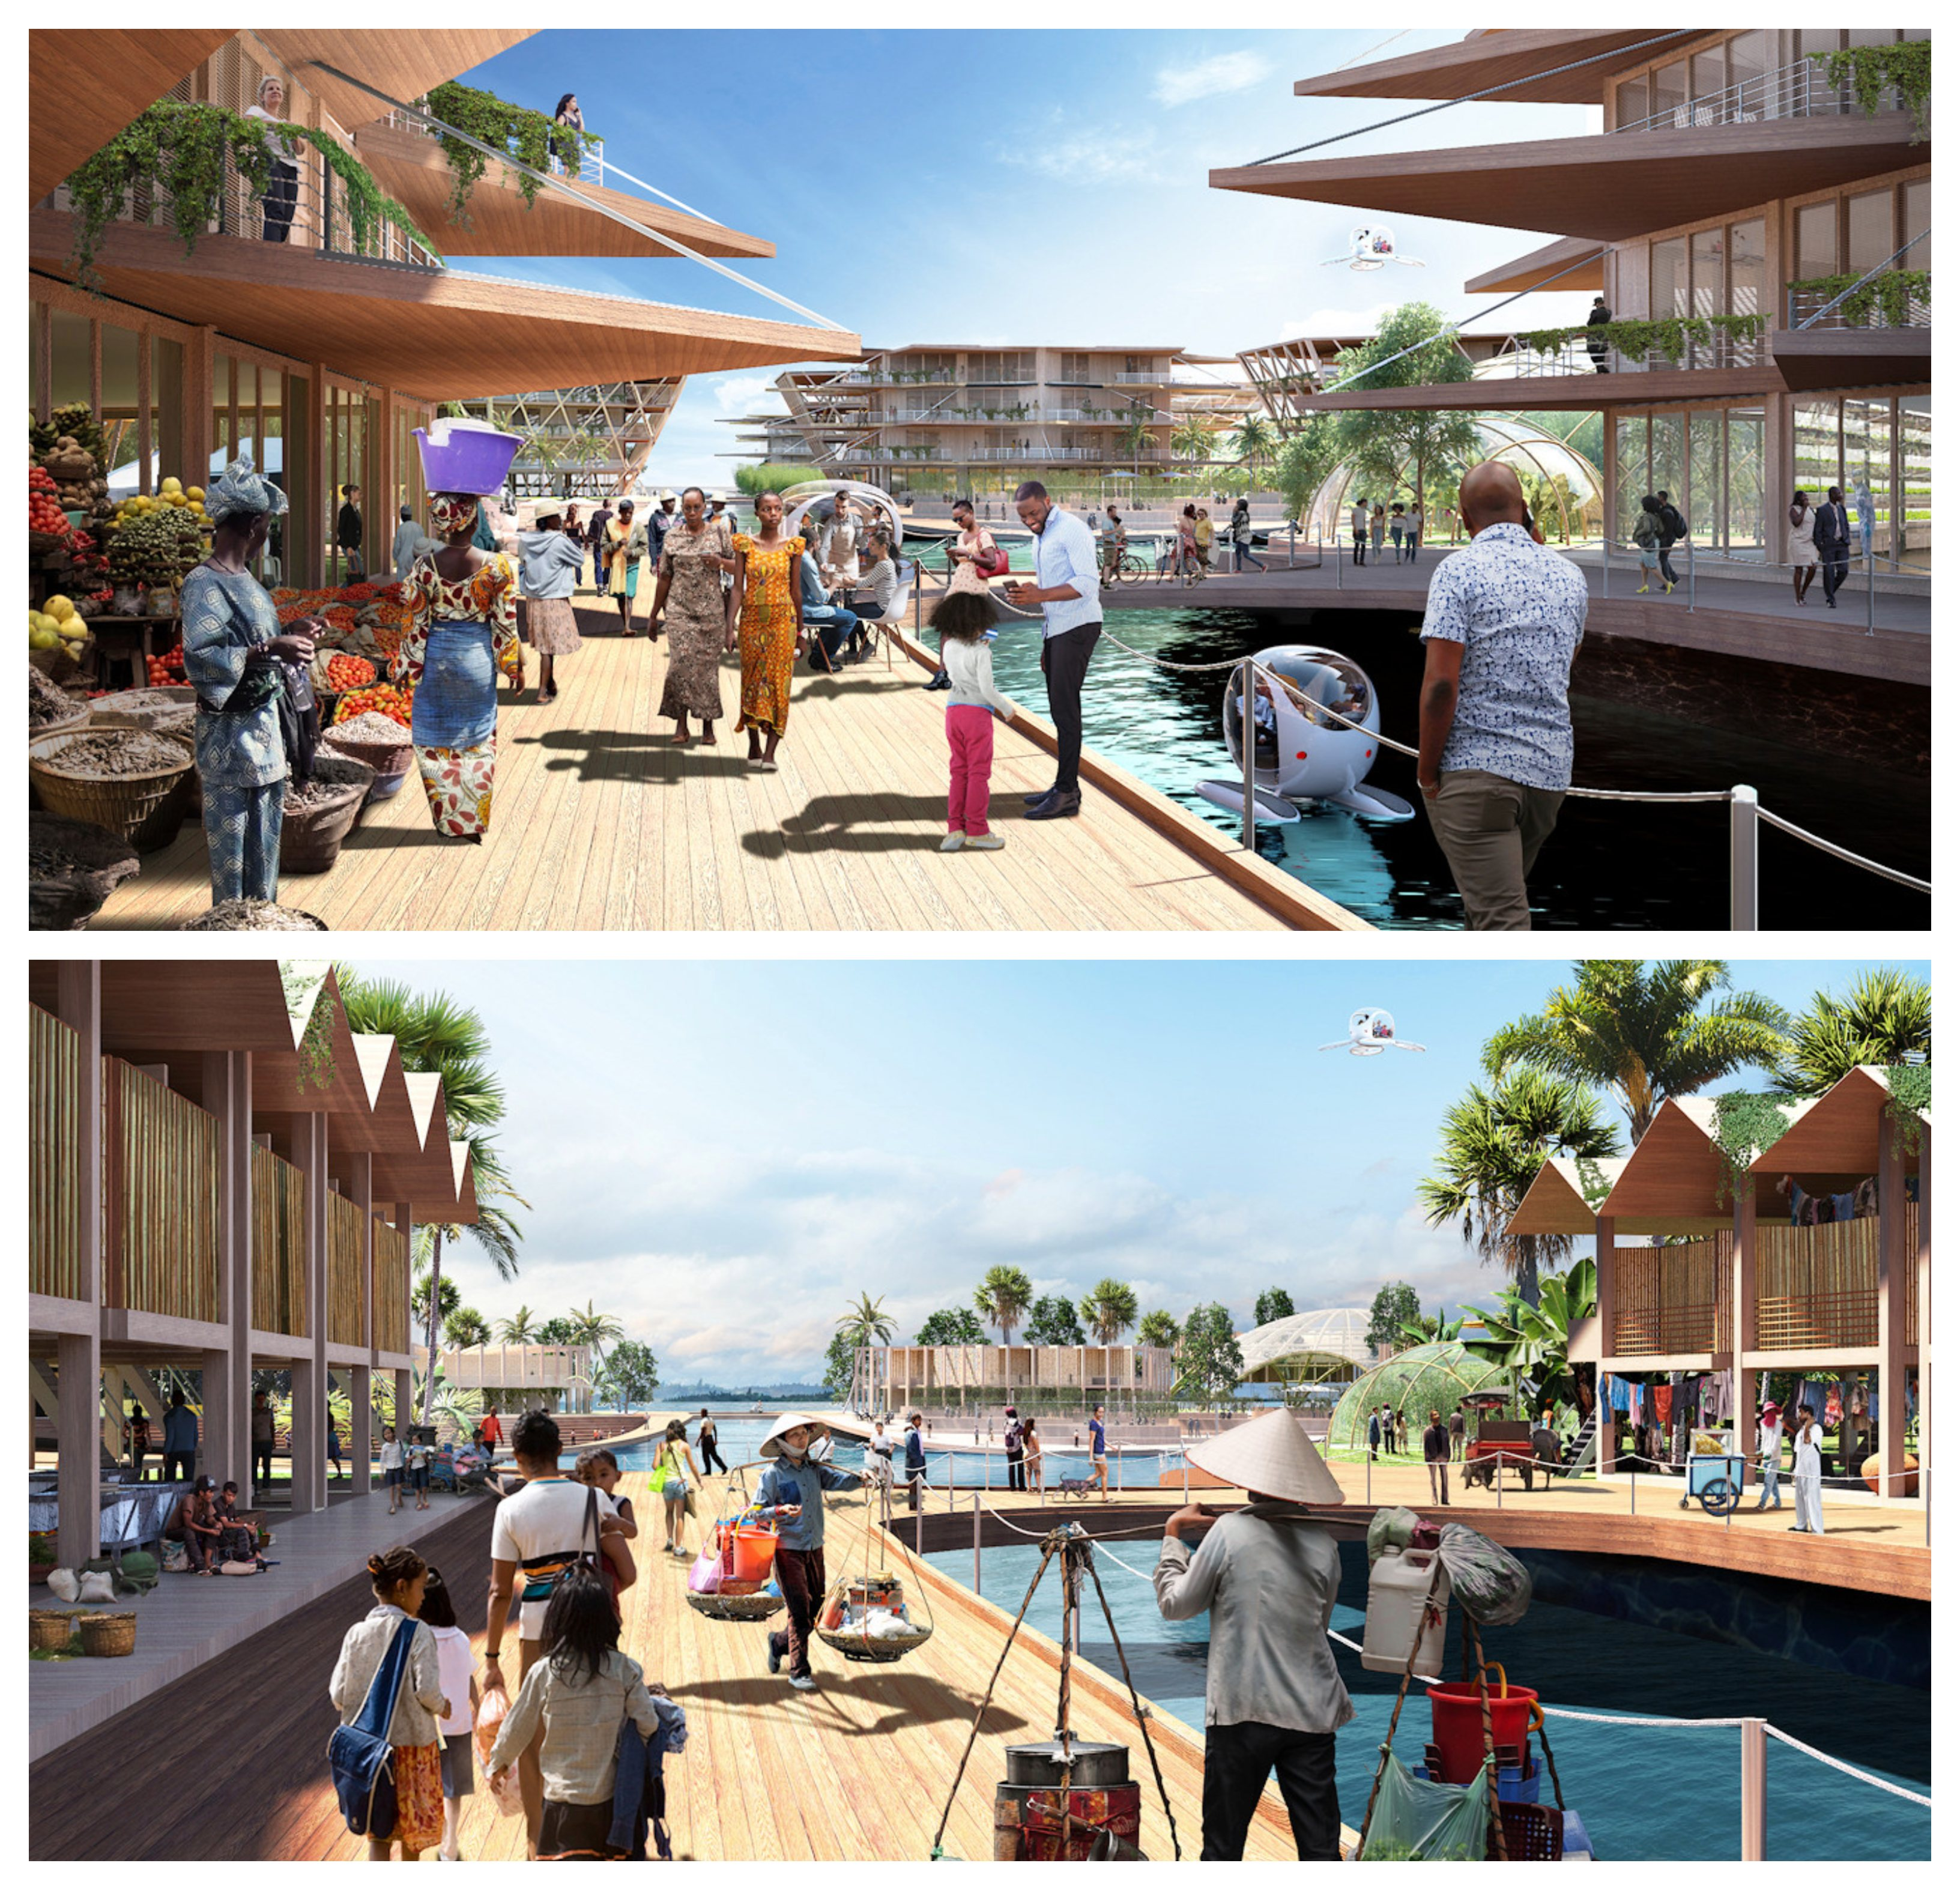 Oceanix City was designed by architect Bjarke Ingels in collaboration with Oceanix.